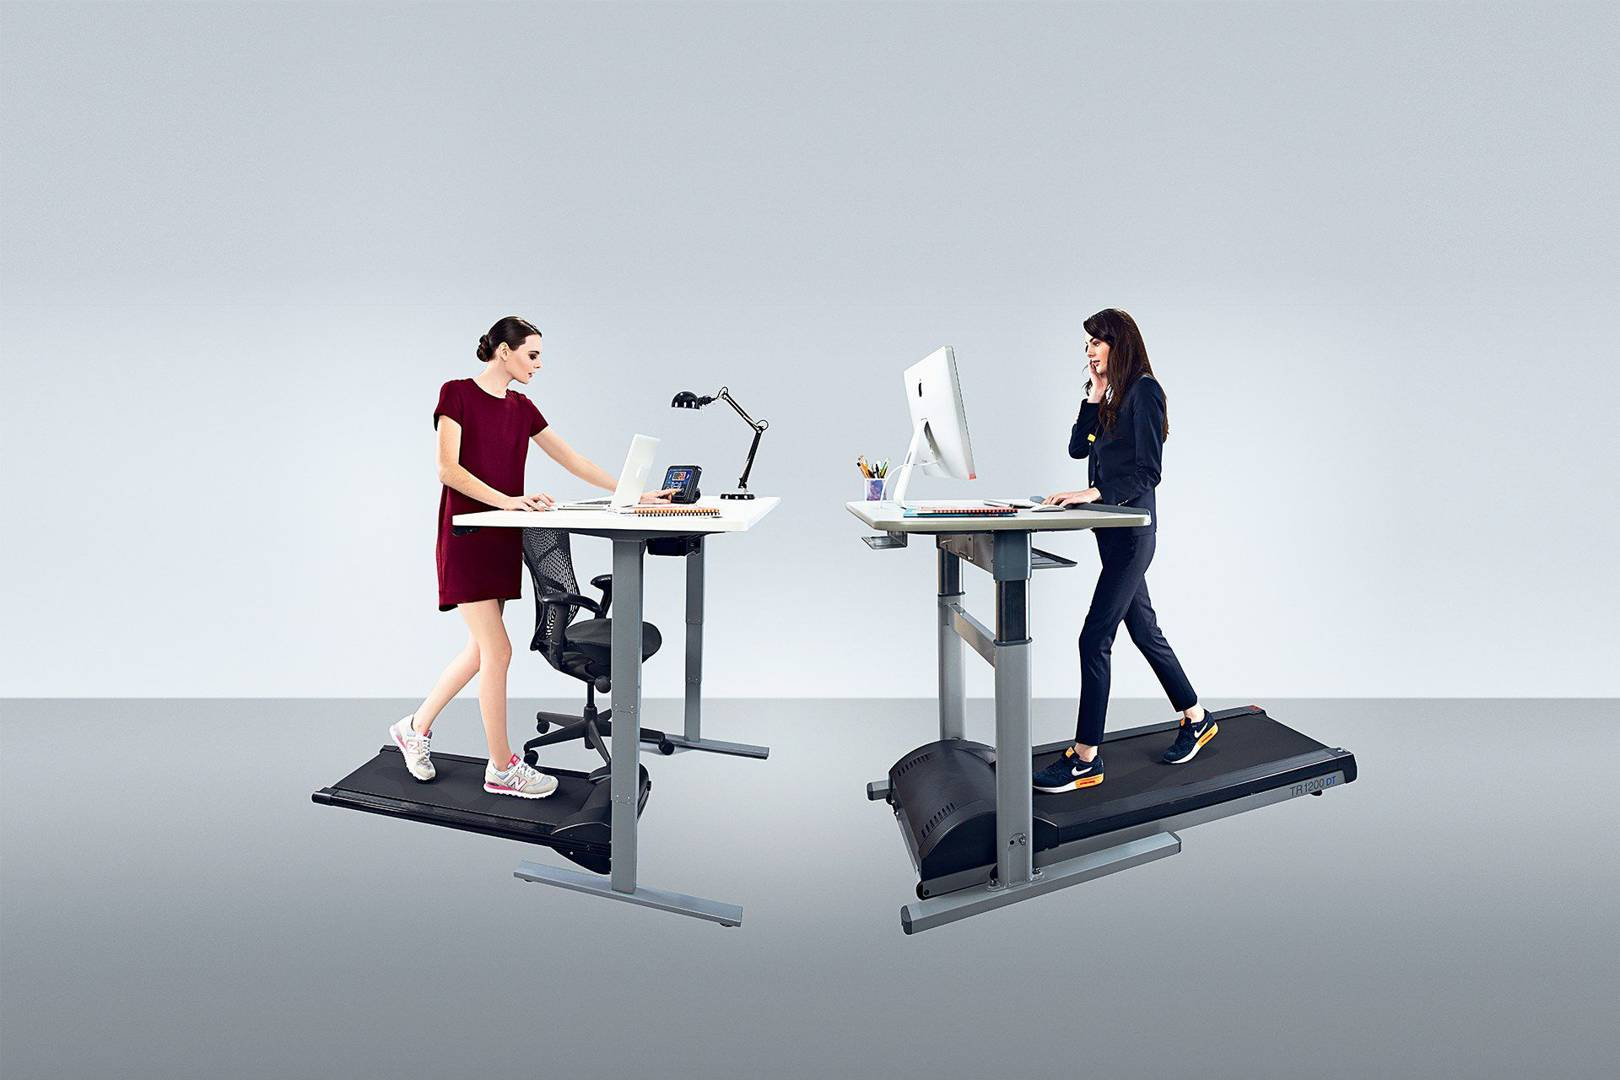 Turns out your standing desk isn't solving your sitting